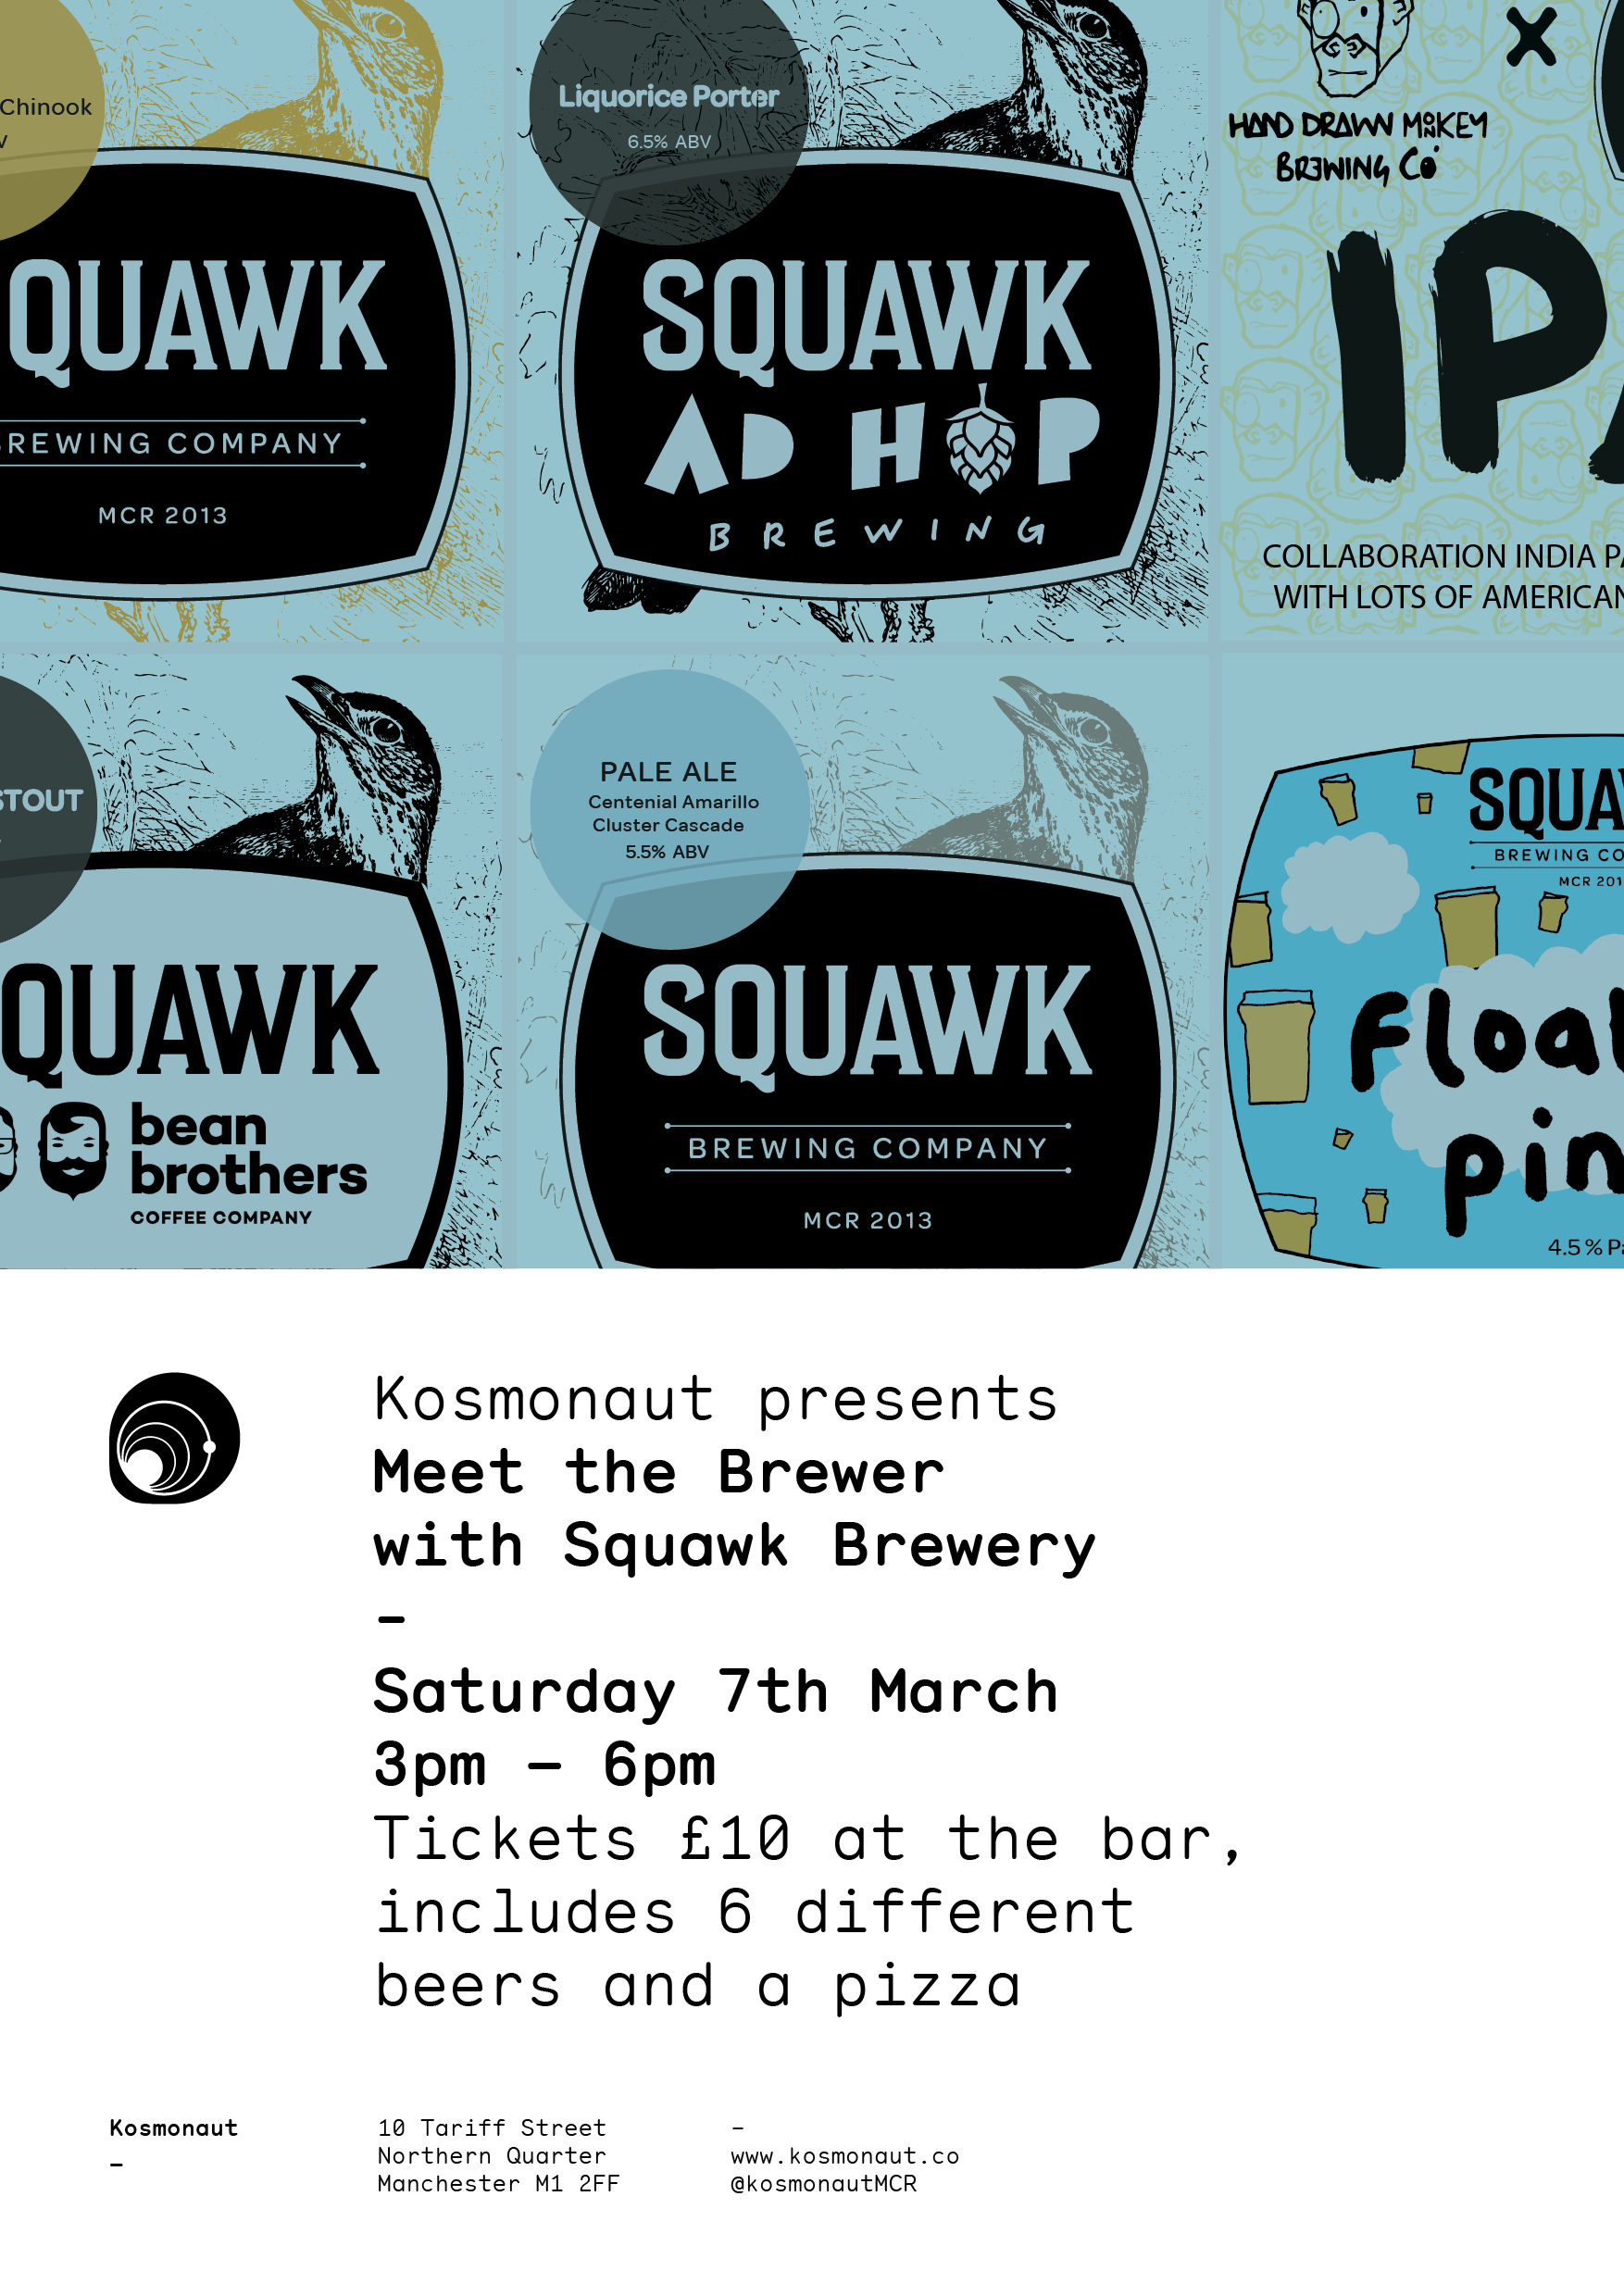 Meet the Brewer with Squawk Brewing Company at Kosmonaut